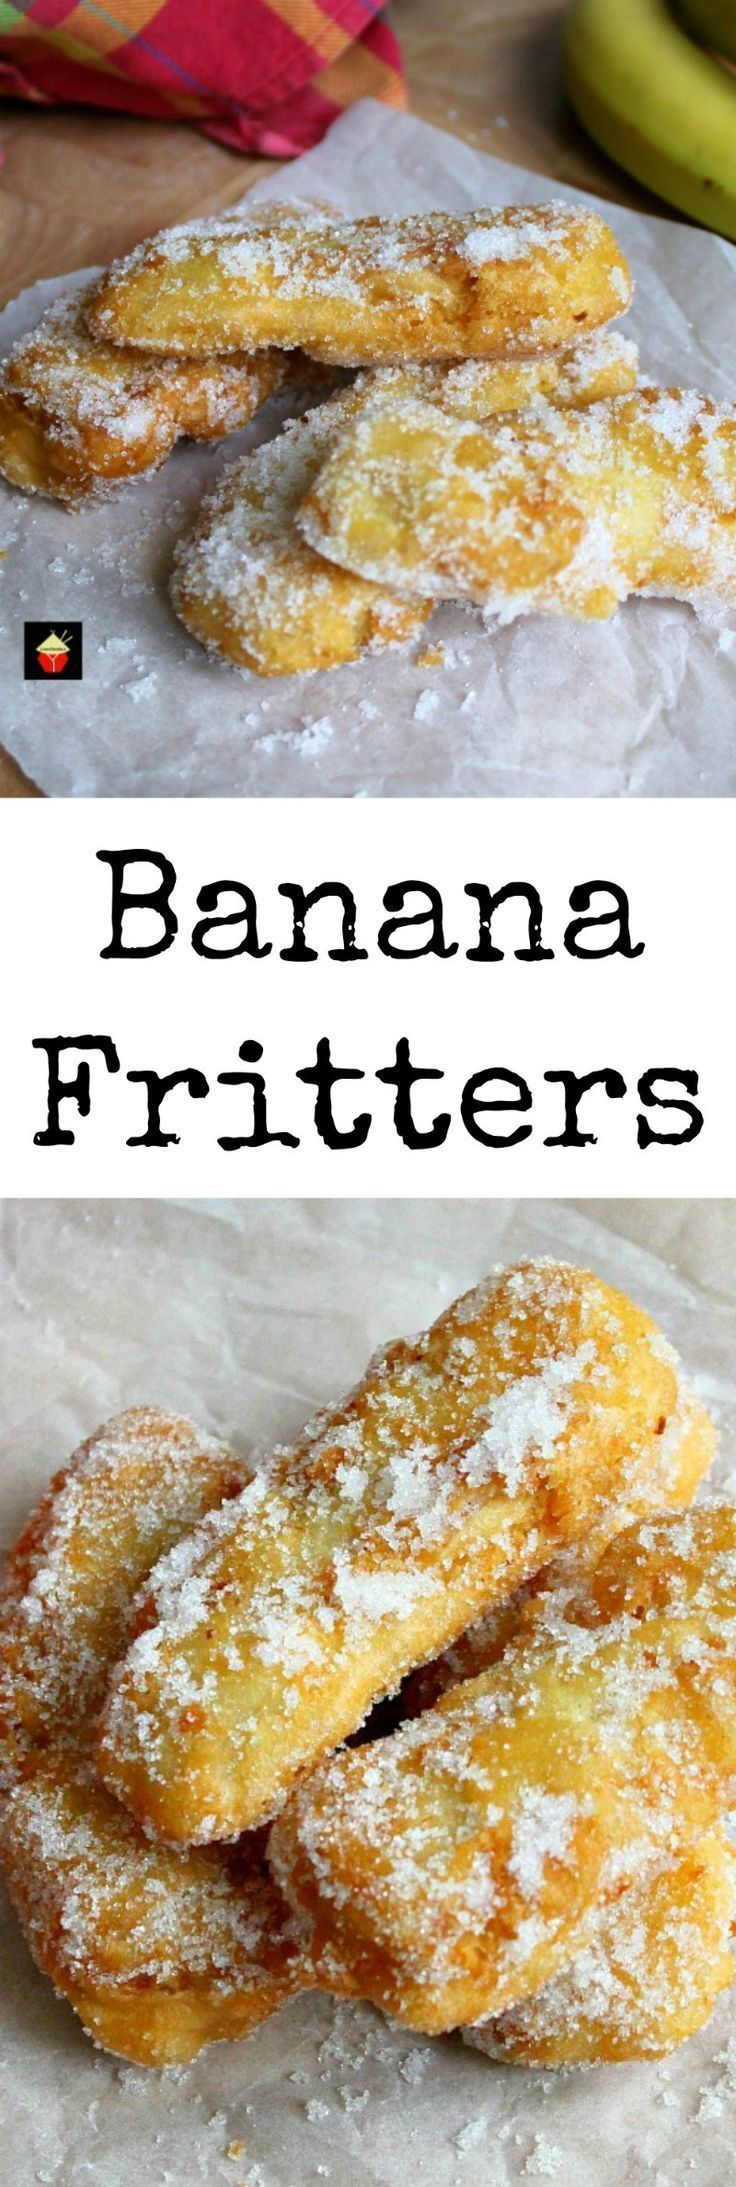 Banana Fritters.A crispy treat, serve warm as they are or with some syrup drizzled over or a blob of ice cream